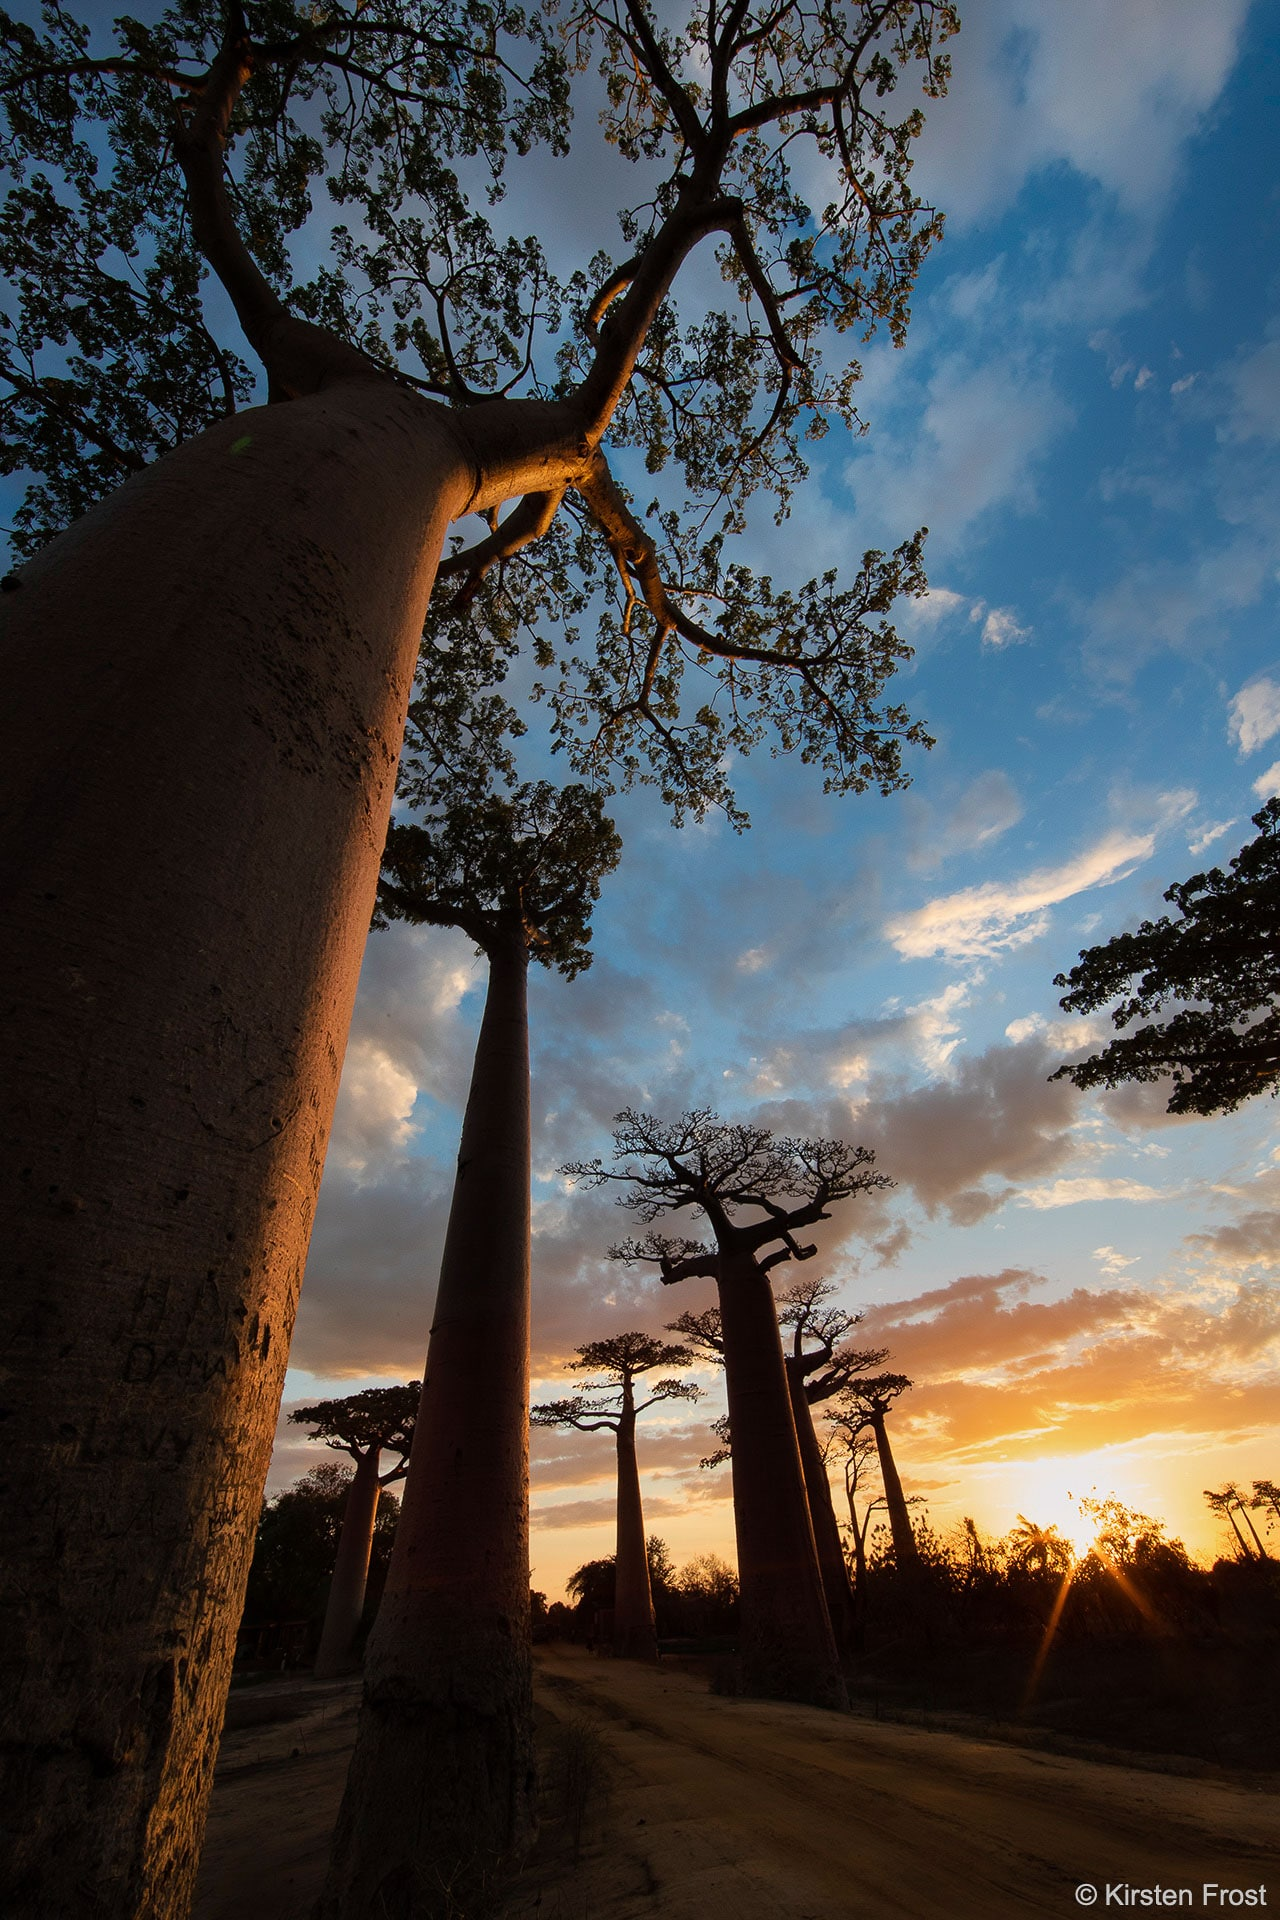 The Avenue of the Baobabs photo tour